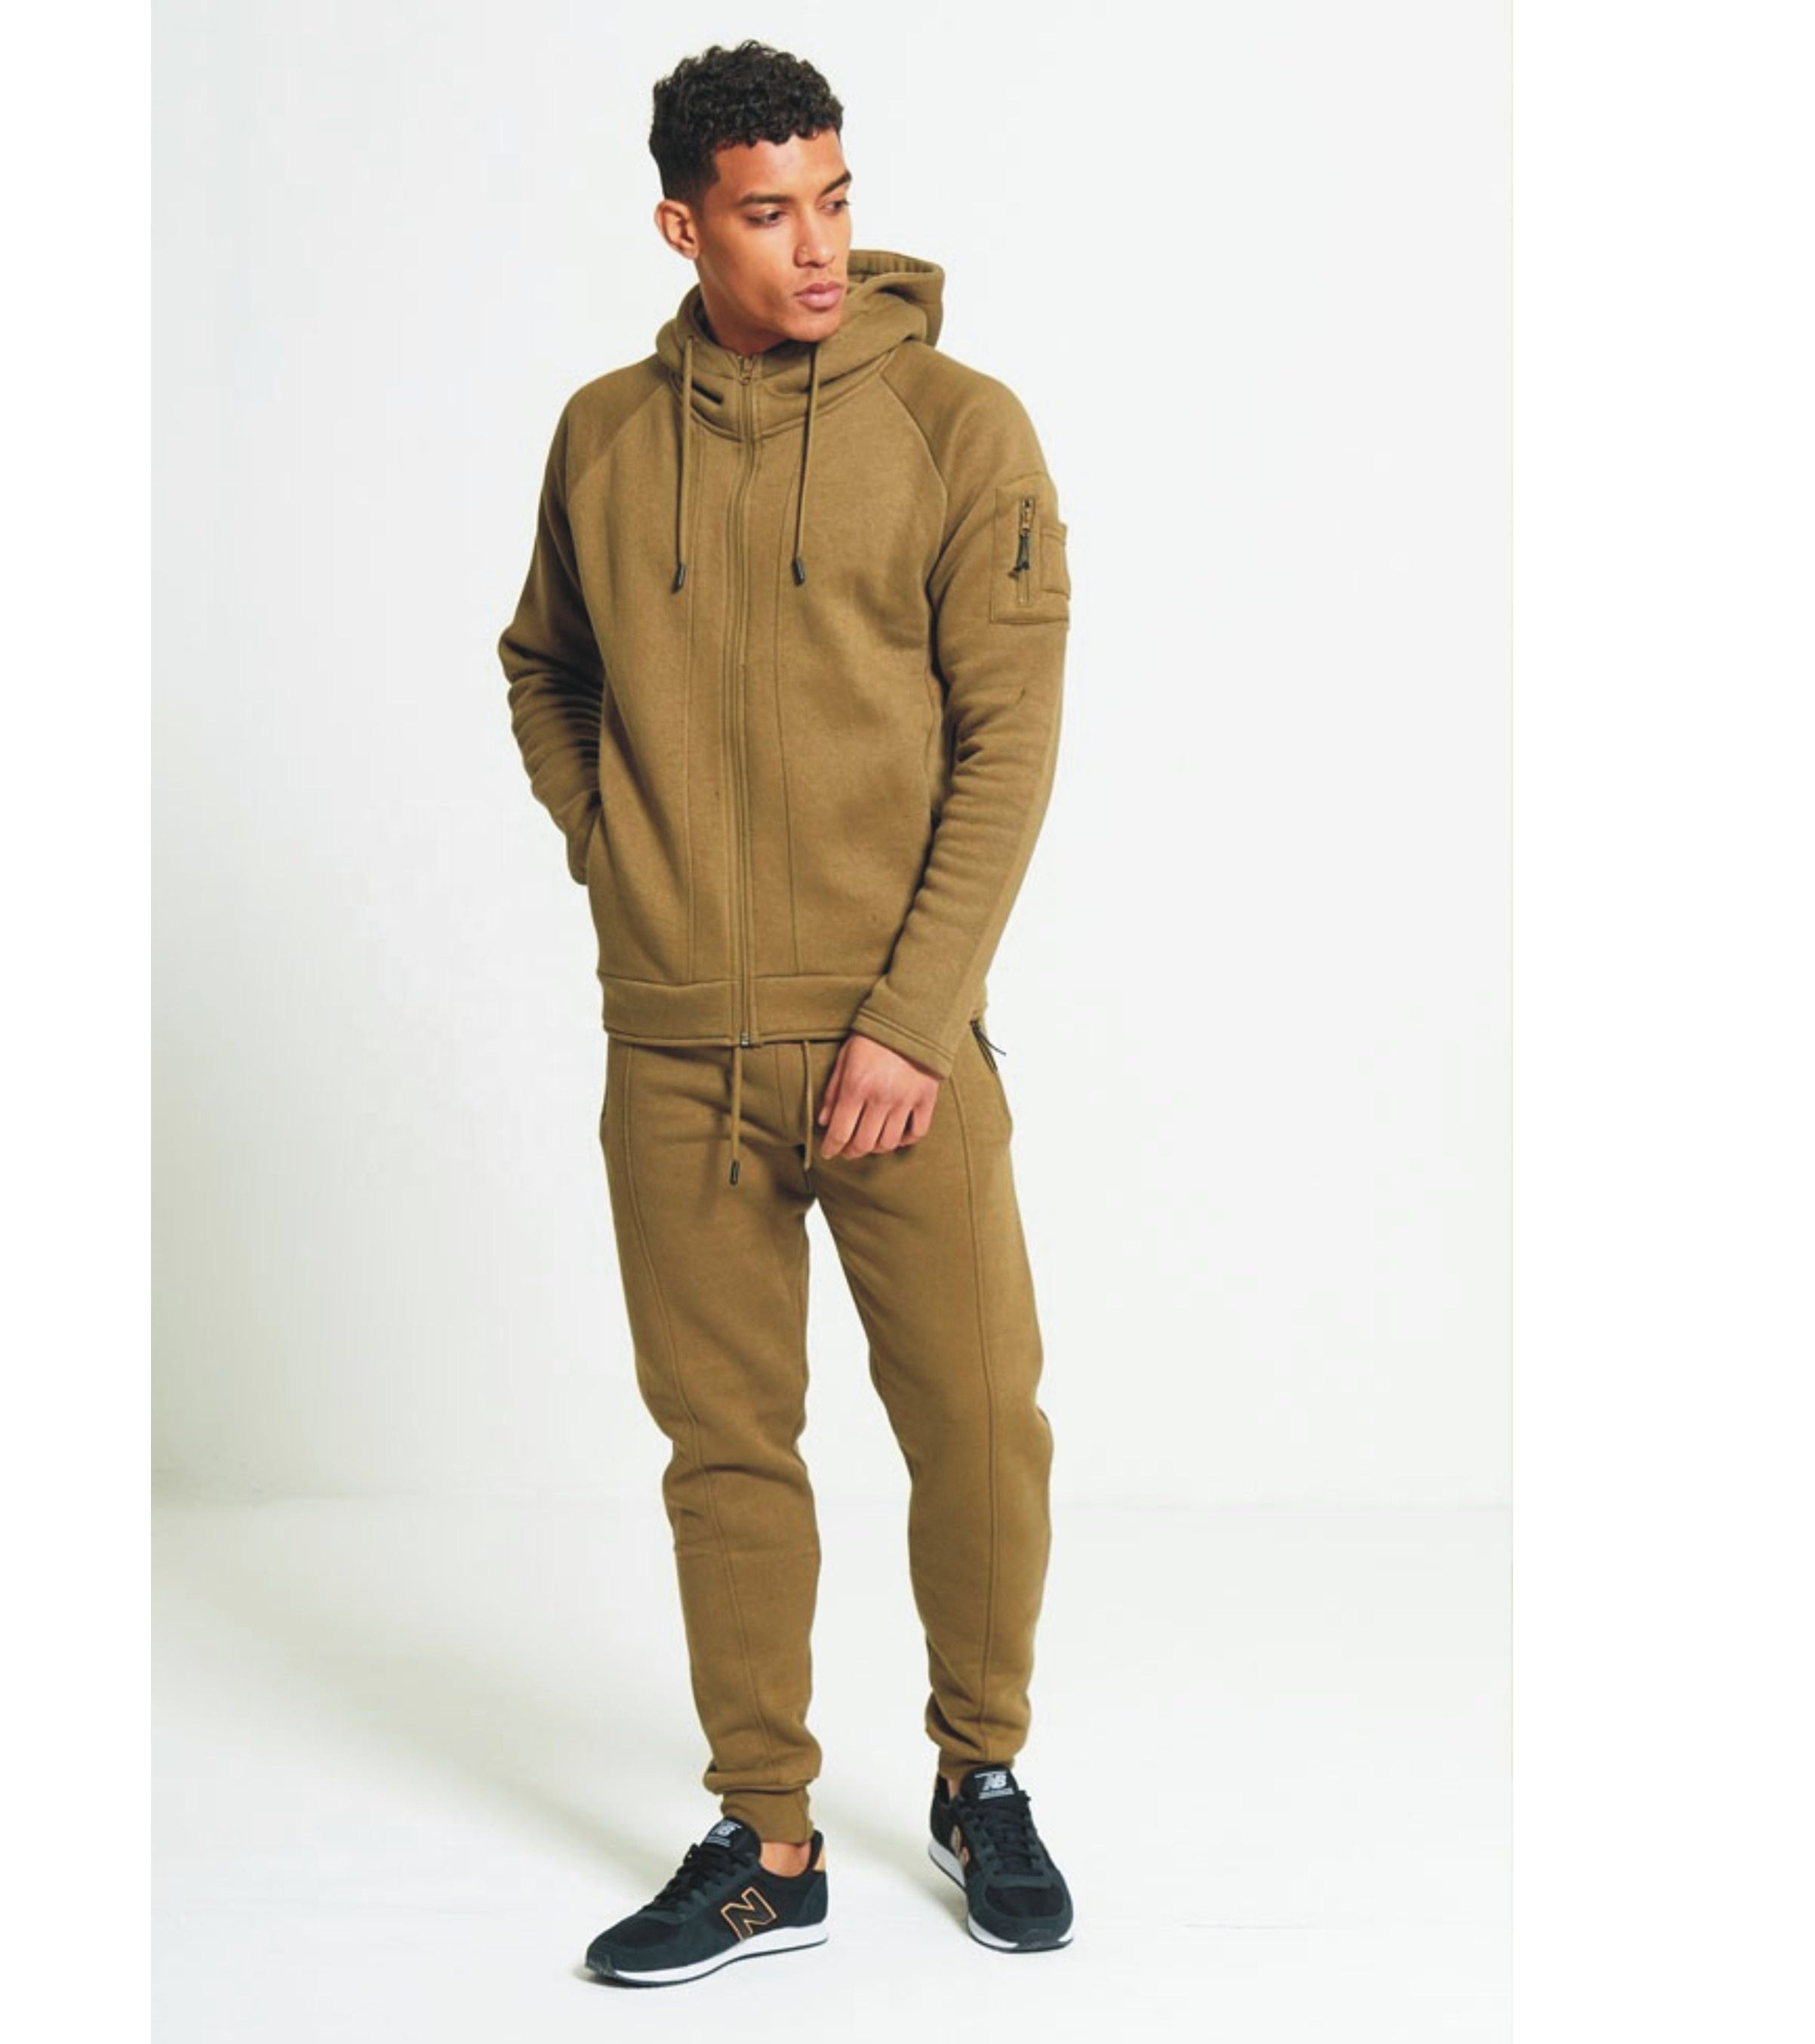 PI-A118 Jogging Custom 100% Polyester Windproof Mens Tracksuit/ Sports Track Suit